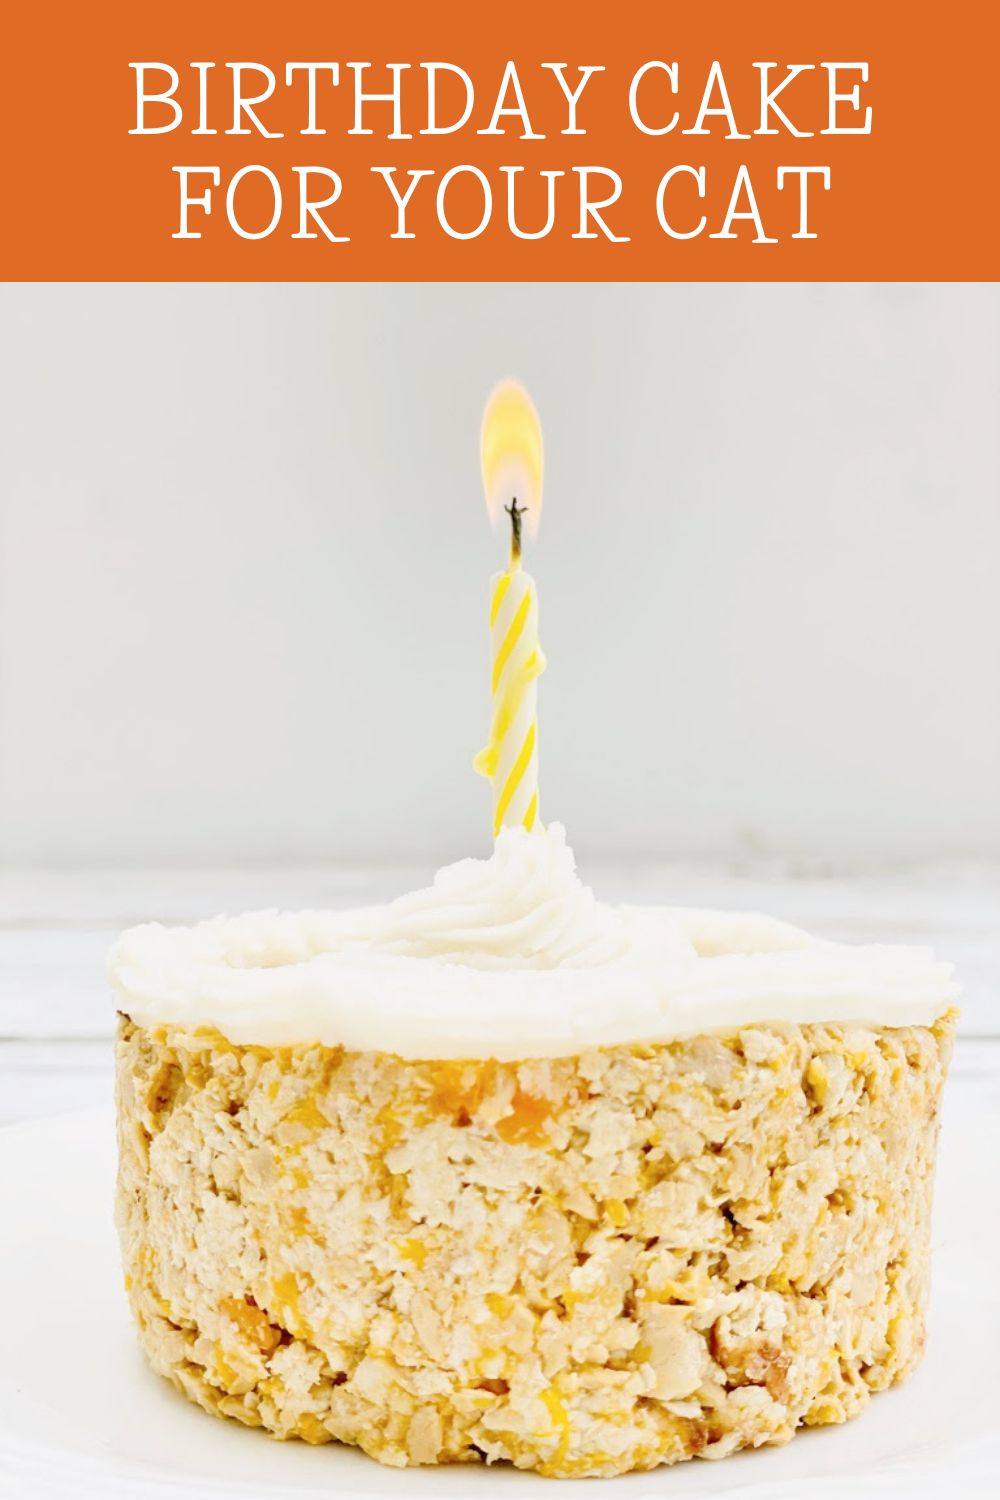 Birthday Cake For Your Cat ~ 4 simple ingredients are all you needed for a plant-based treat filled with your cat's favorite meaty flavors!  via @thiswifecooks